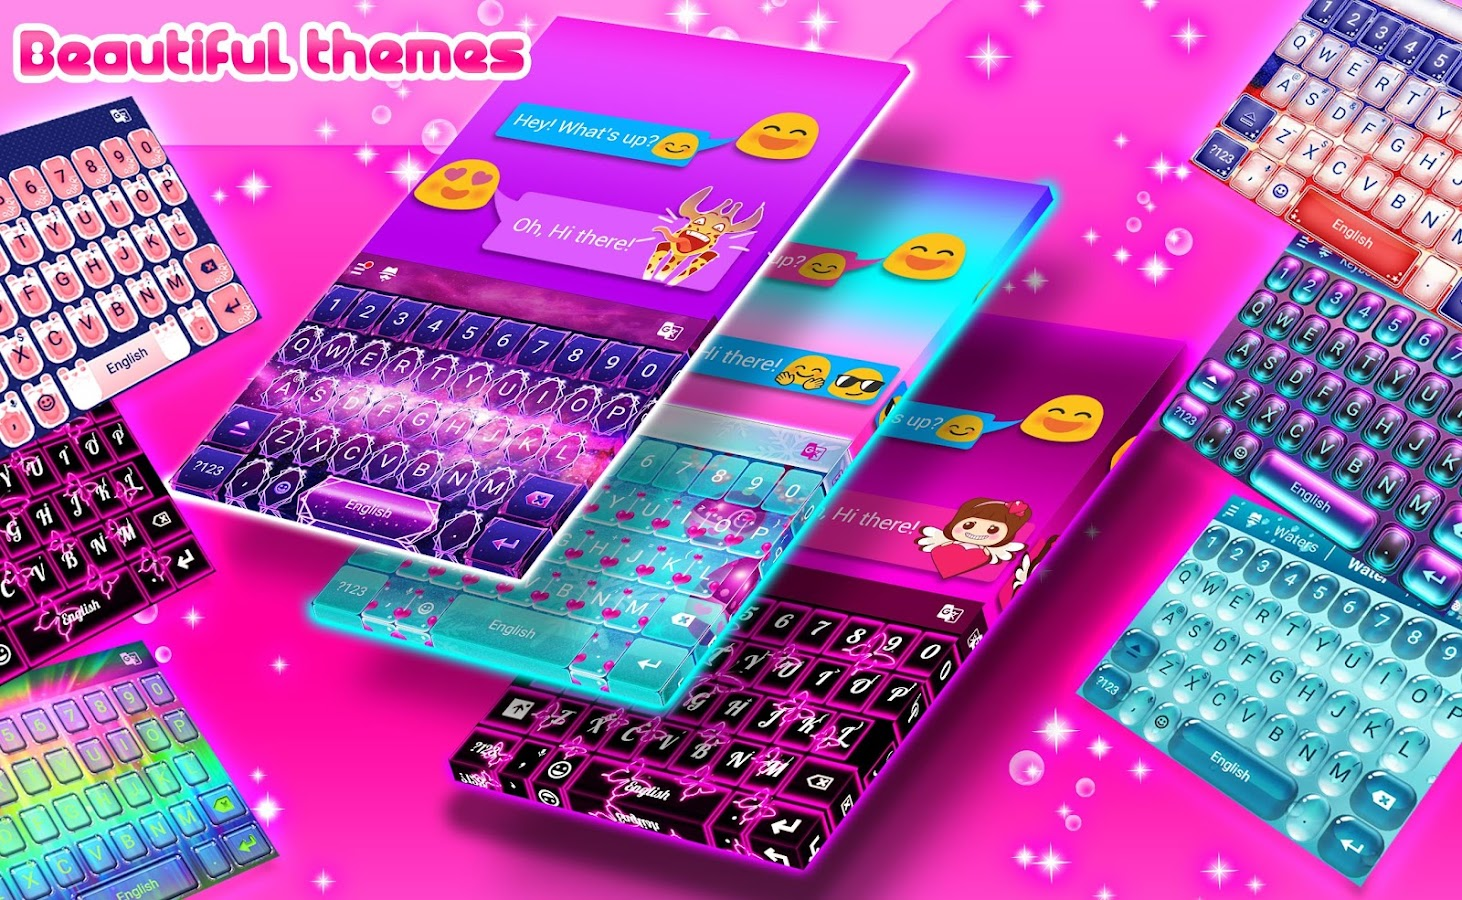 Google themes pictures